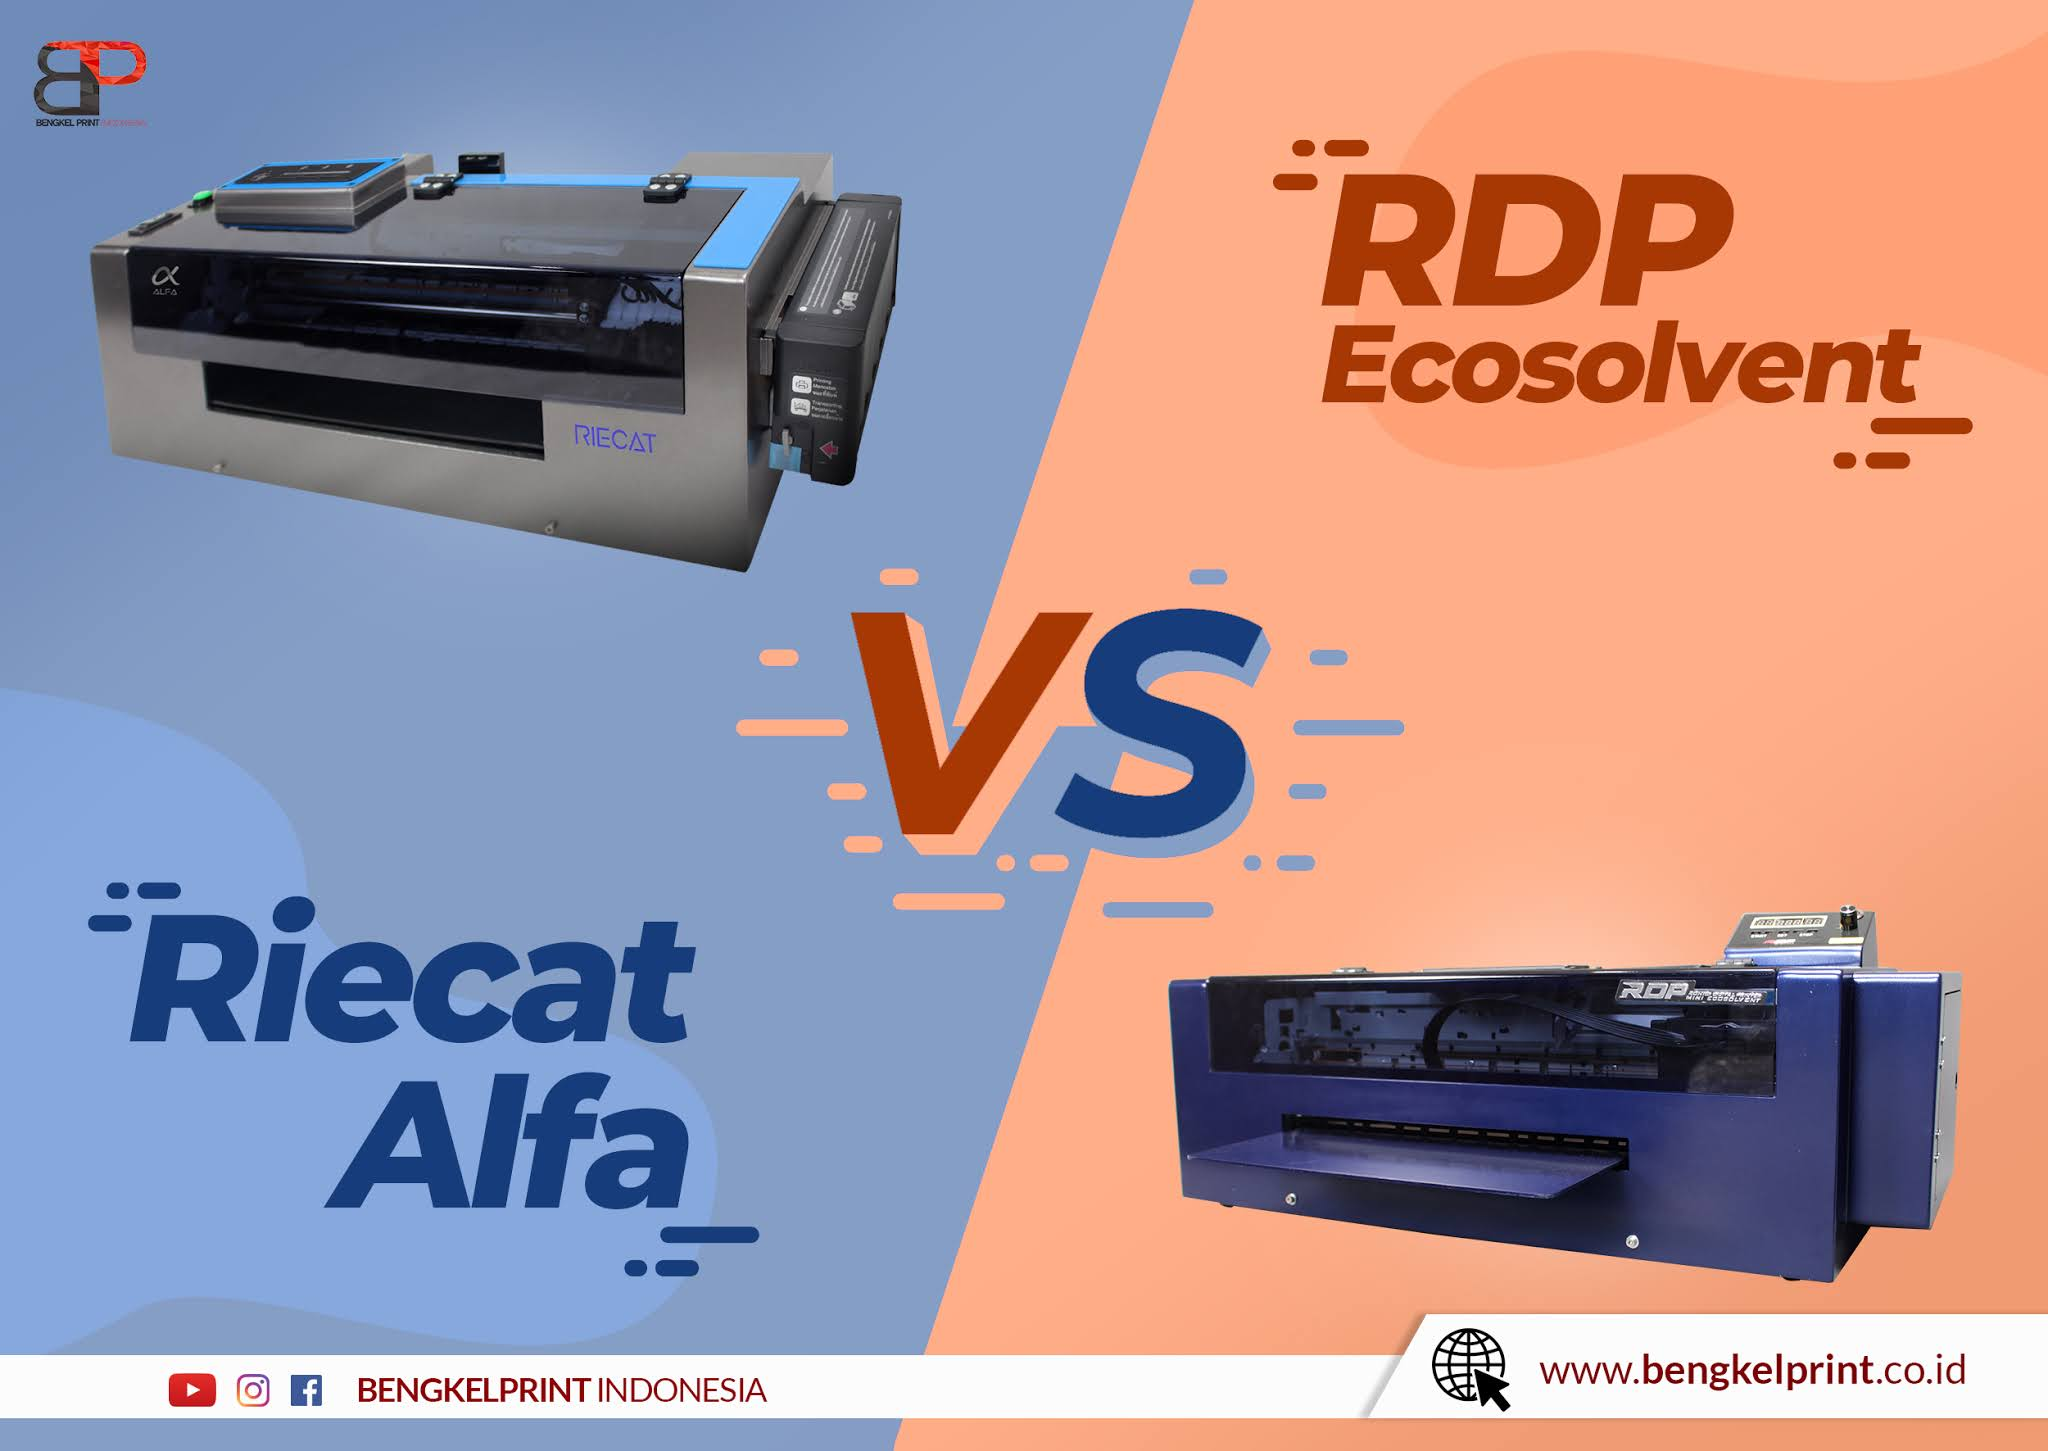 printer riecat alfa vs printer rdp ecosolvent